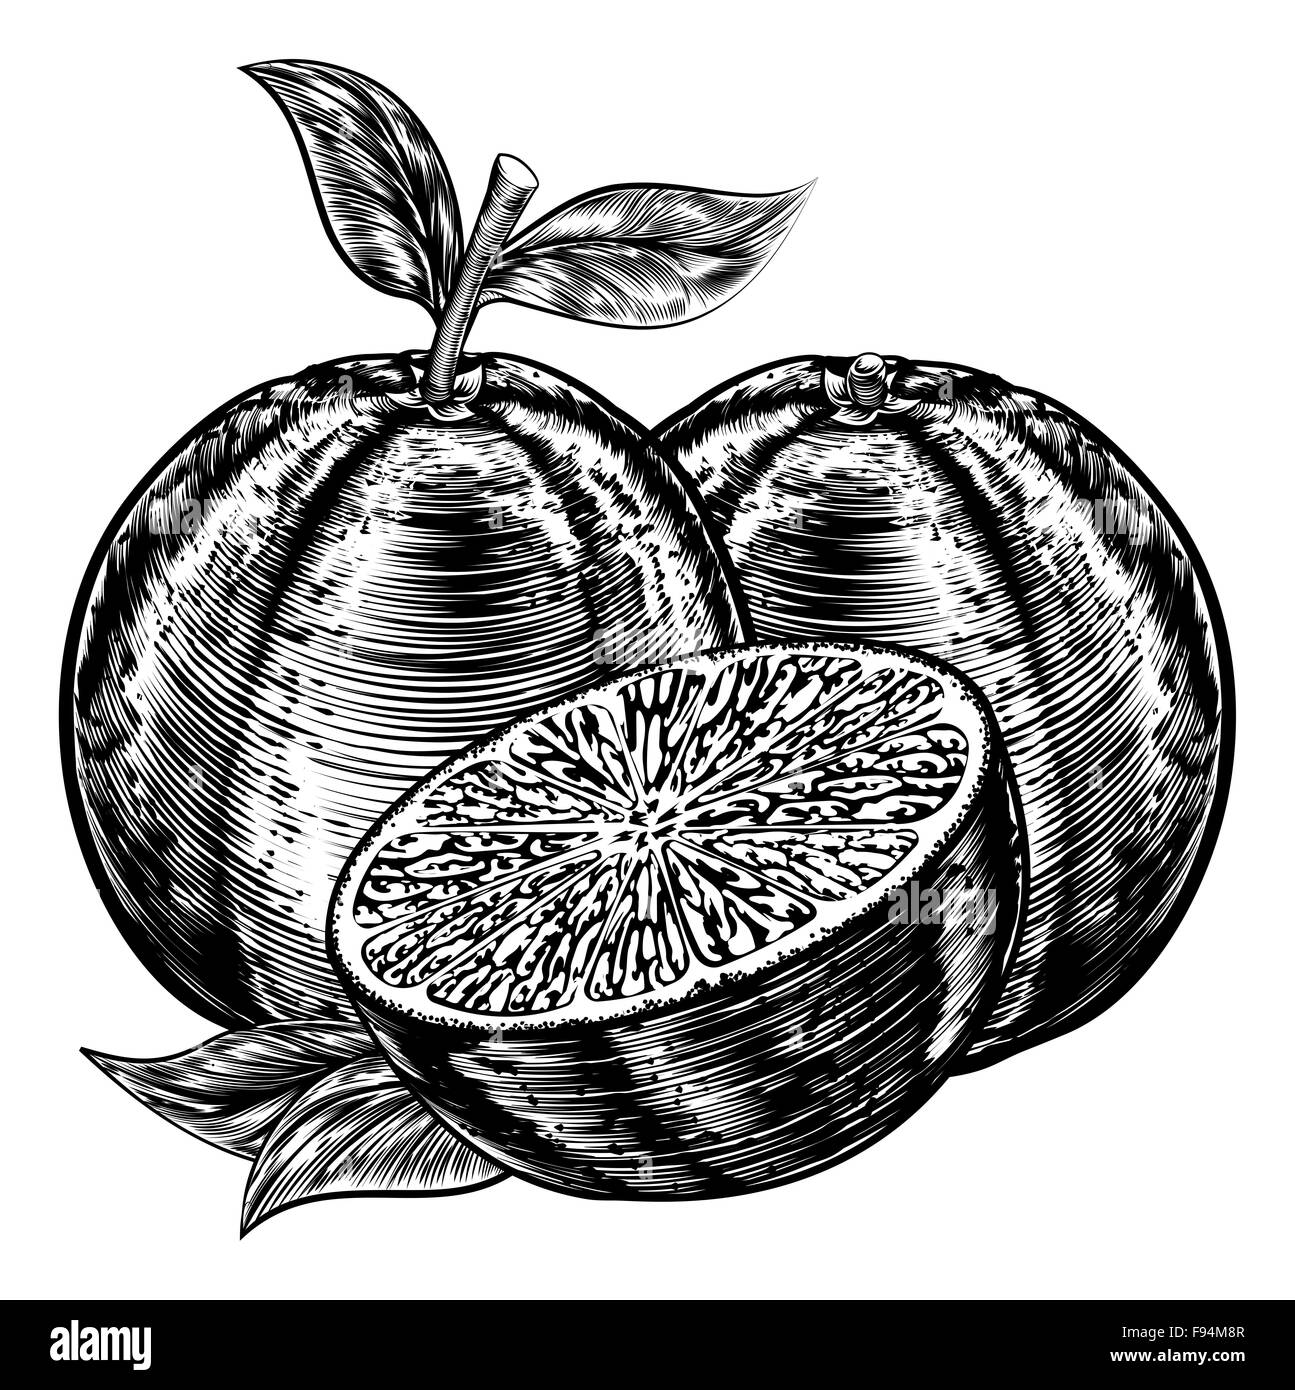 An original illustration of sliced oranges fruit in a vintage woodcut or woodblock style Stock Photo